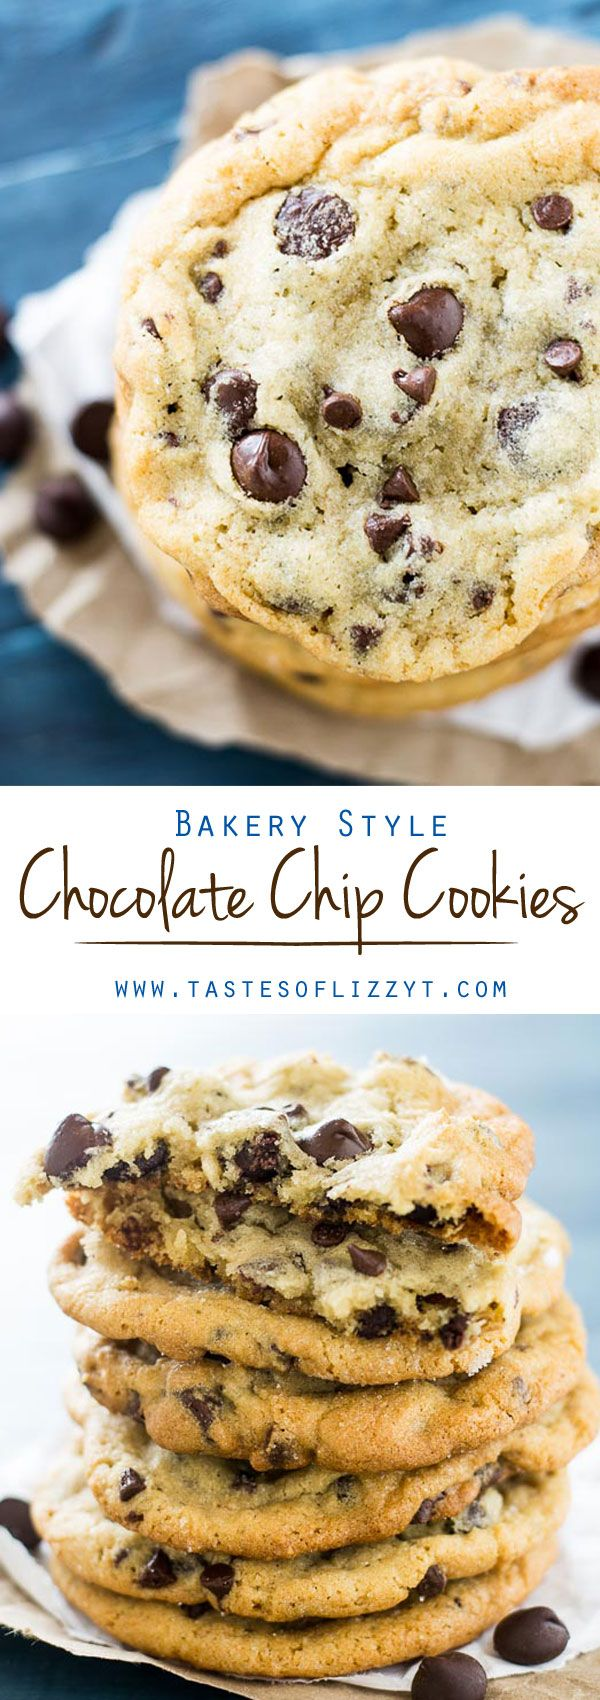 Bakery Style Chocolate Chip Cookies I on MyRecipeMagic.com. The search is over. Introducing the all around best Bakery Style Chocolate Chip Cookie Recipe. Slightly crisp on the outside, soft and chewy on the inside.